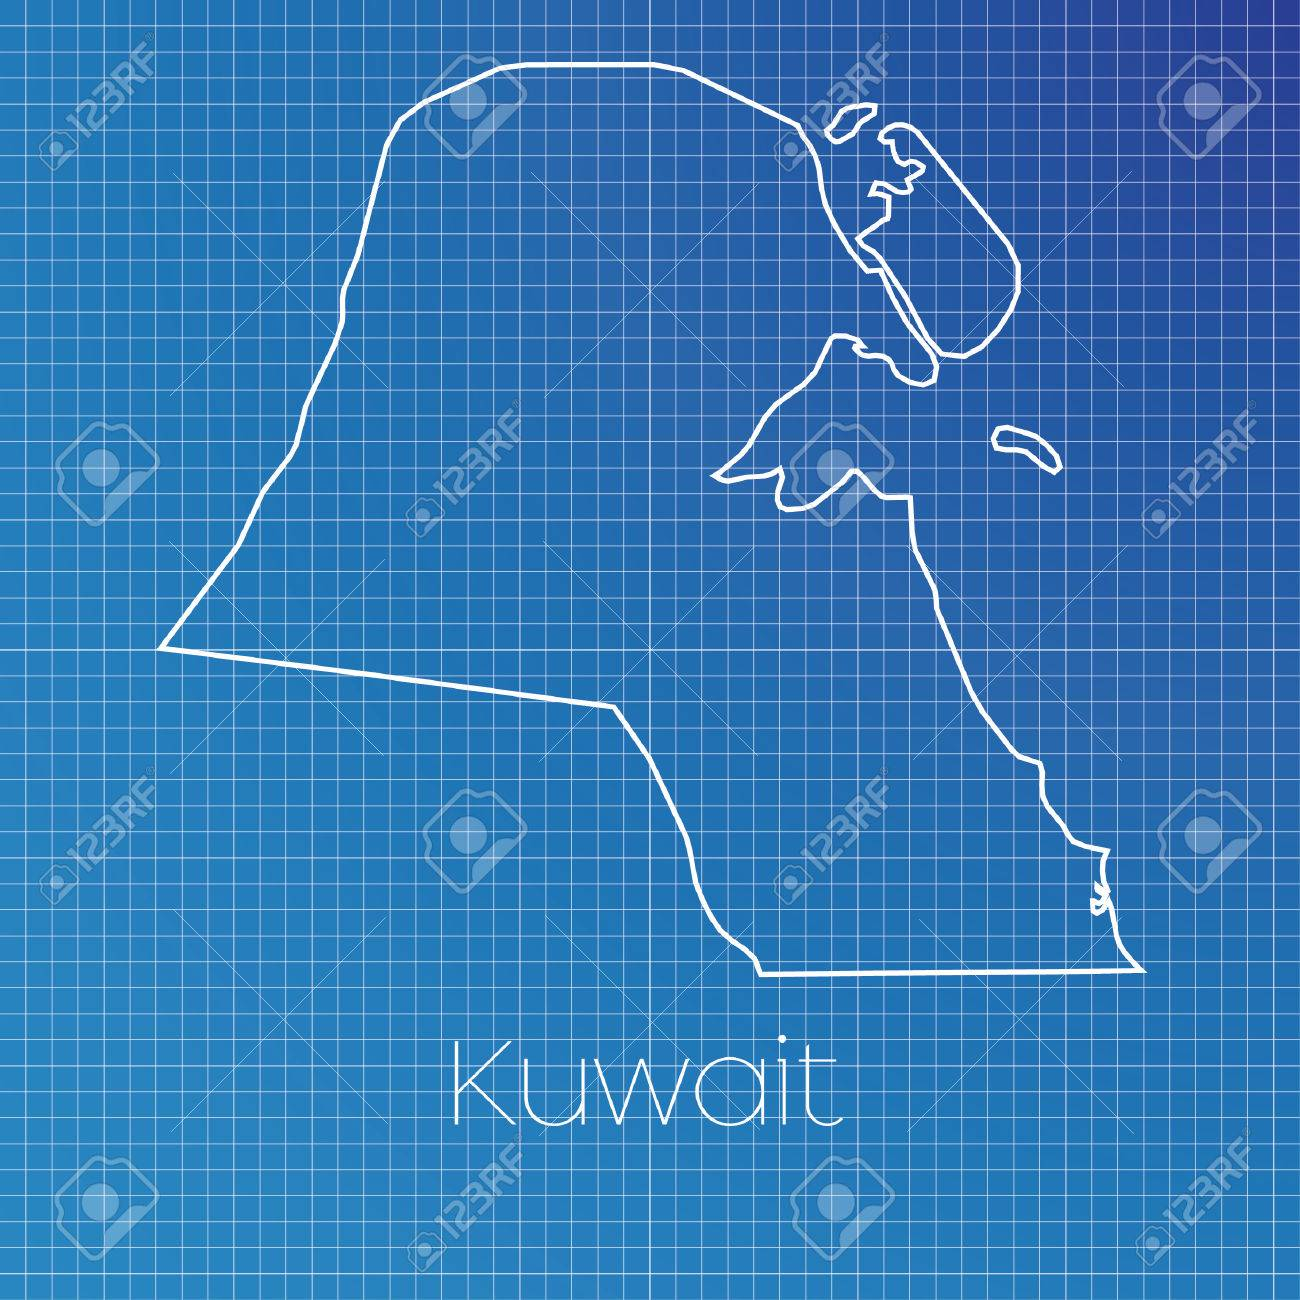 A Schematic Outline Of The Country Of Kuwait Stock Photo, Picture ...